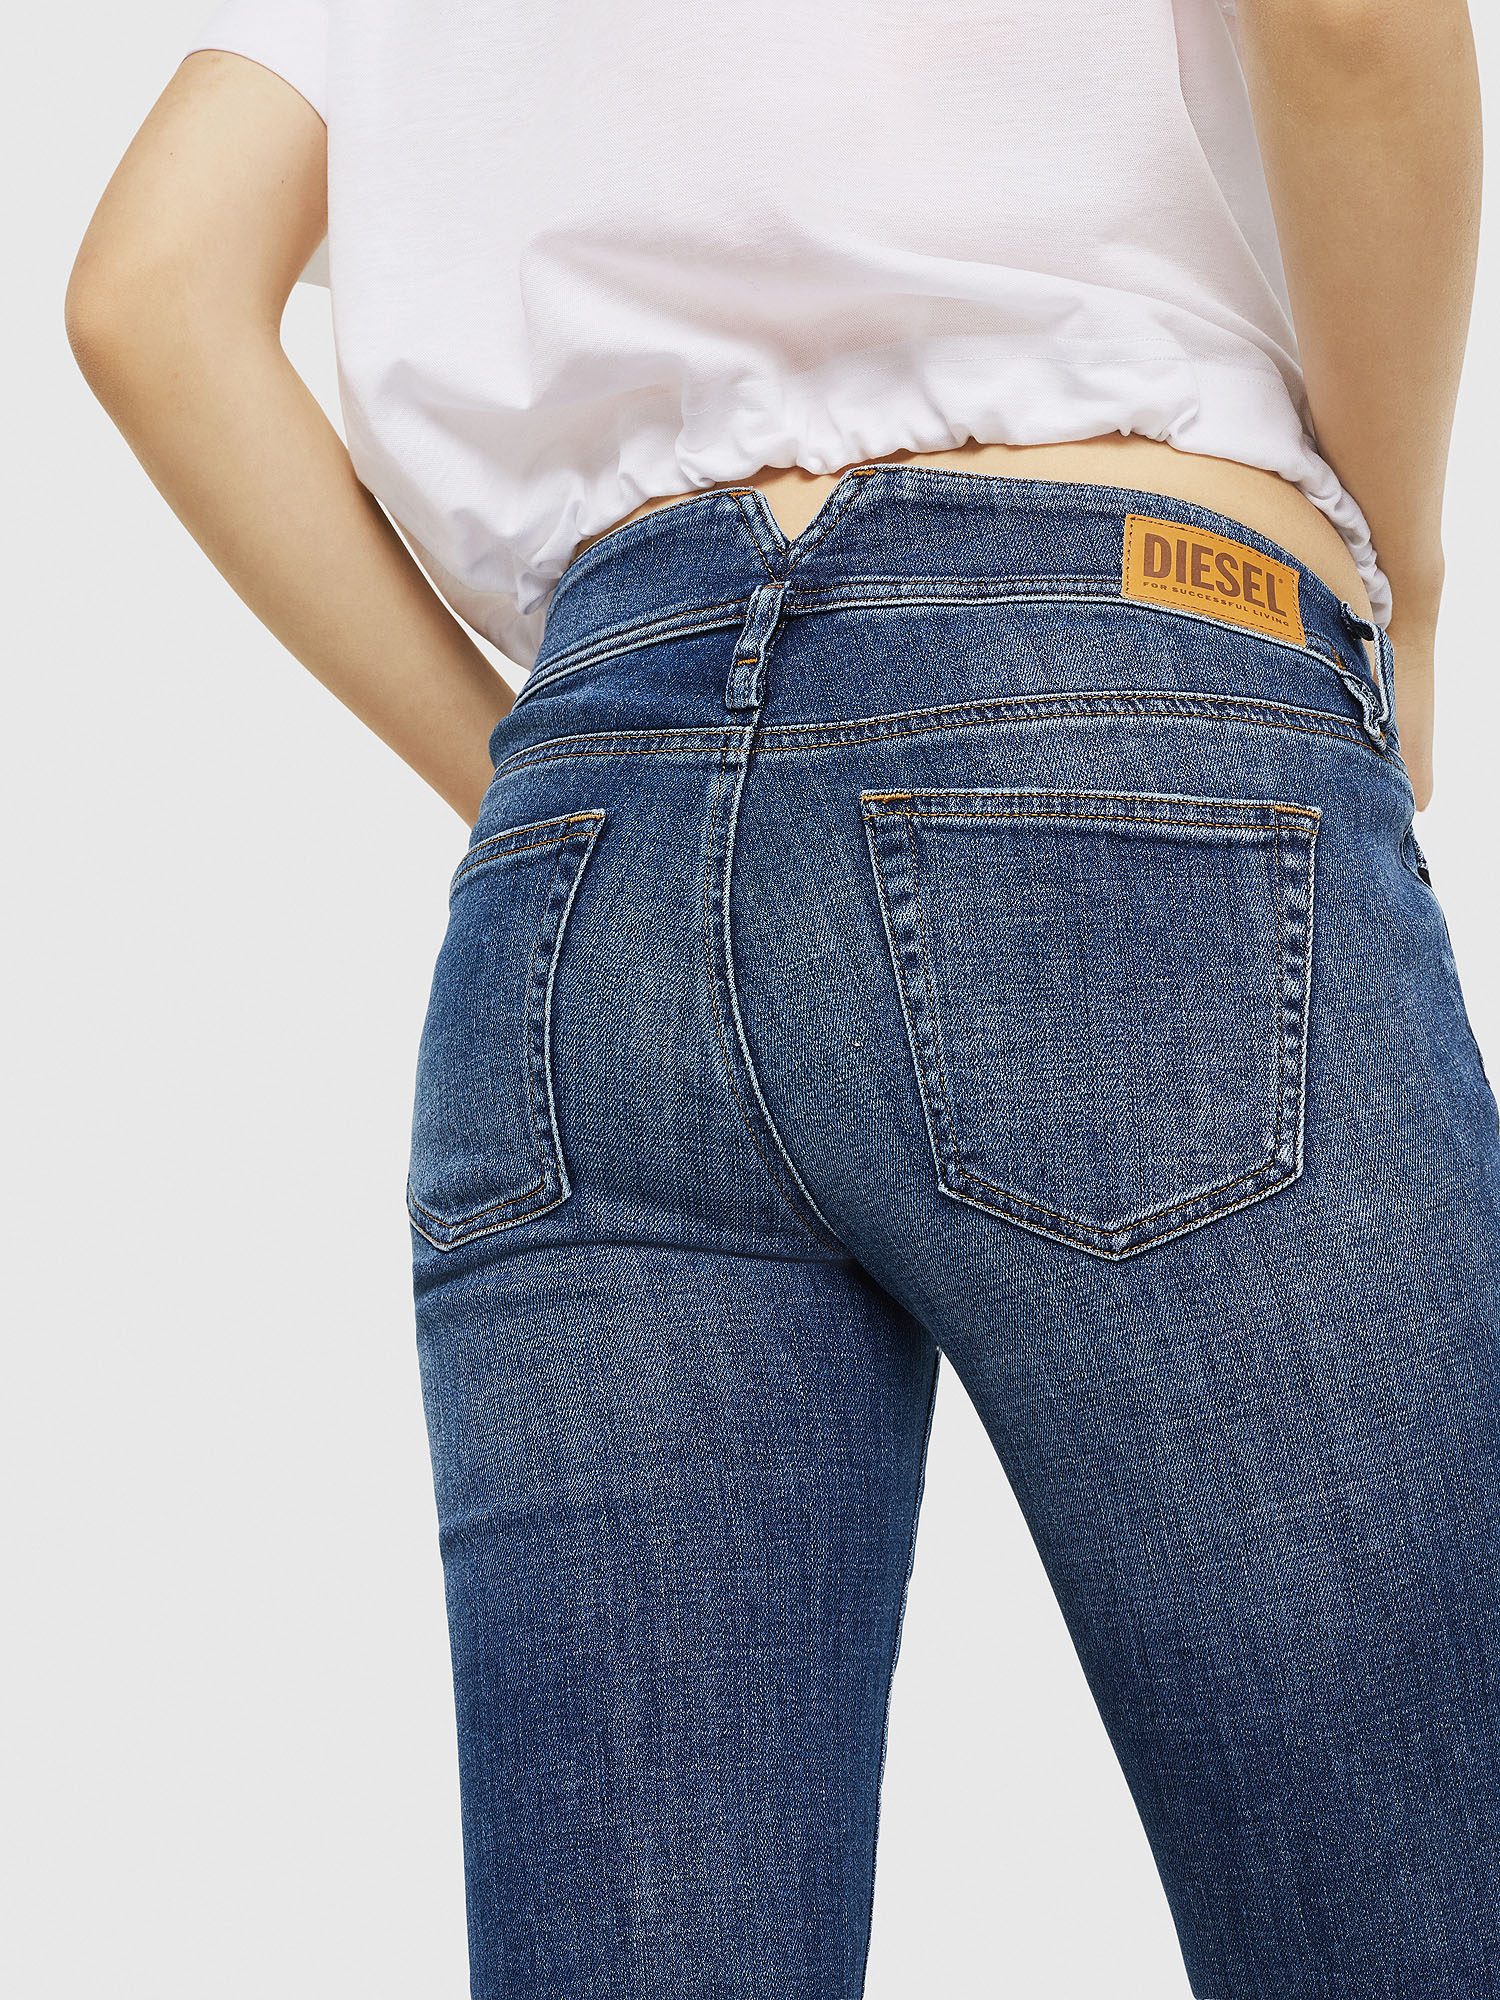 Diesel - D-Clayre 082AD,  - Jeans - Image 5